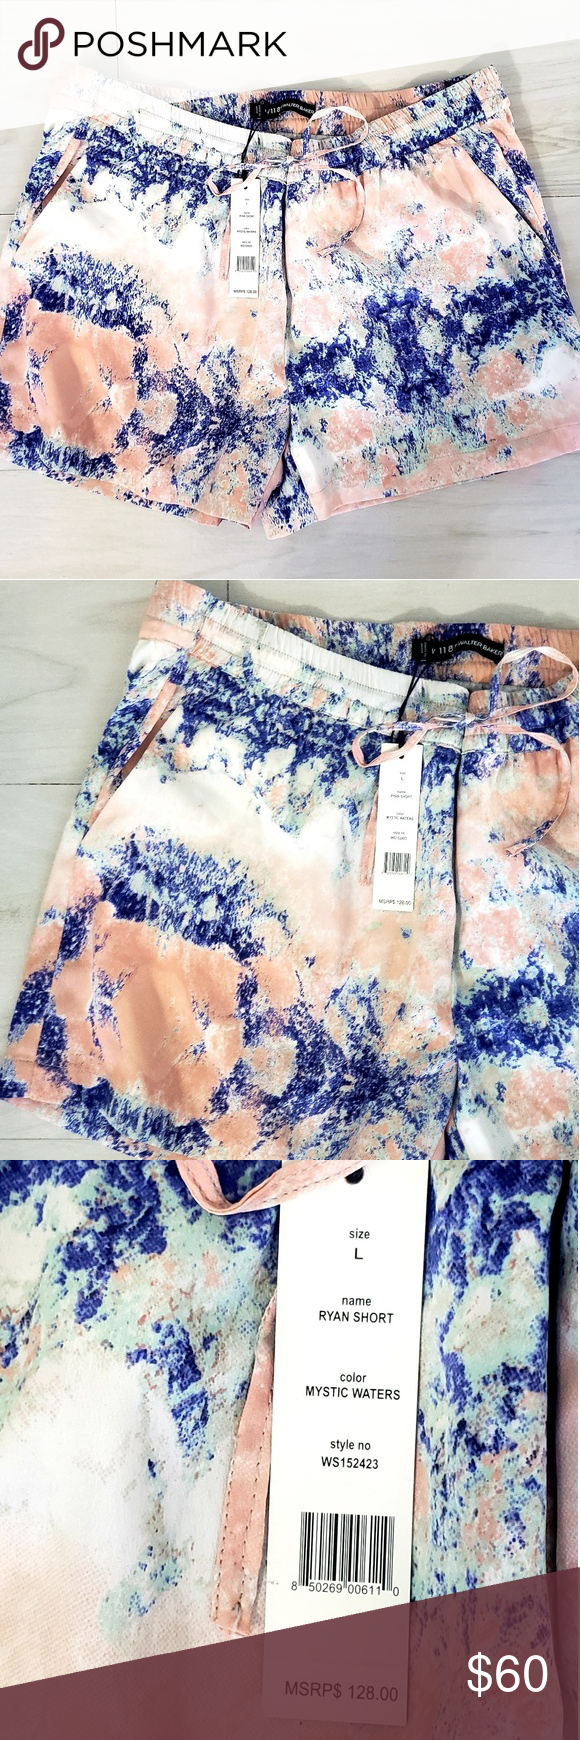 W118 Walter Baker silky printed drawstring short L W118 Walter Baker beautiful printed silky drawstring shorts, new with tags, fits like an 8. 3.5 inseam, roomy fit. Dress up with wedges or your fave tory burch flats:) W118 by Walter Baker Shorts #wfaves W118 Walter Baker silky printed drawstring short L W118 Walter Baker beautiful printed silky drawstring shorts, new with tags, fits like an 8. 3.5 inseam, roomy fit. Dress up with wedges or your fave tory burch flats:) W118 by Walter Baker Shor #wfaves